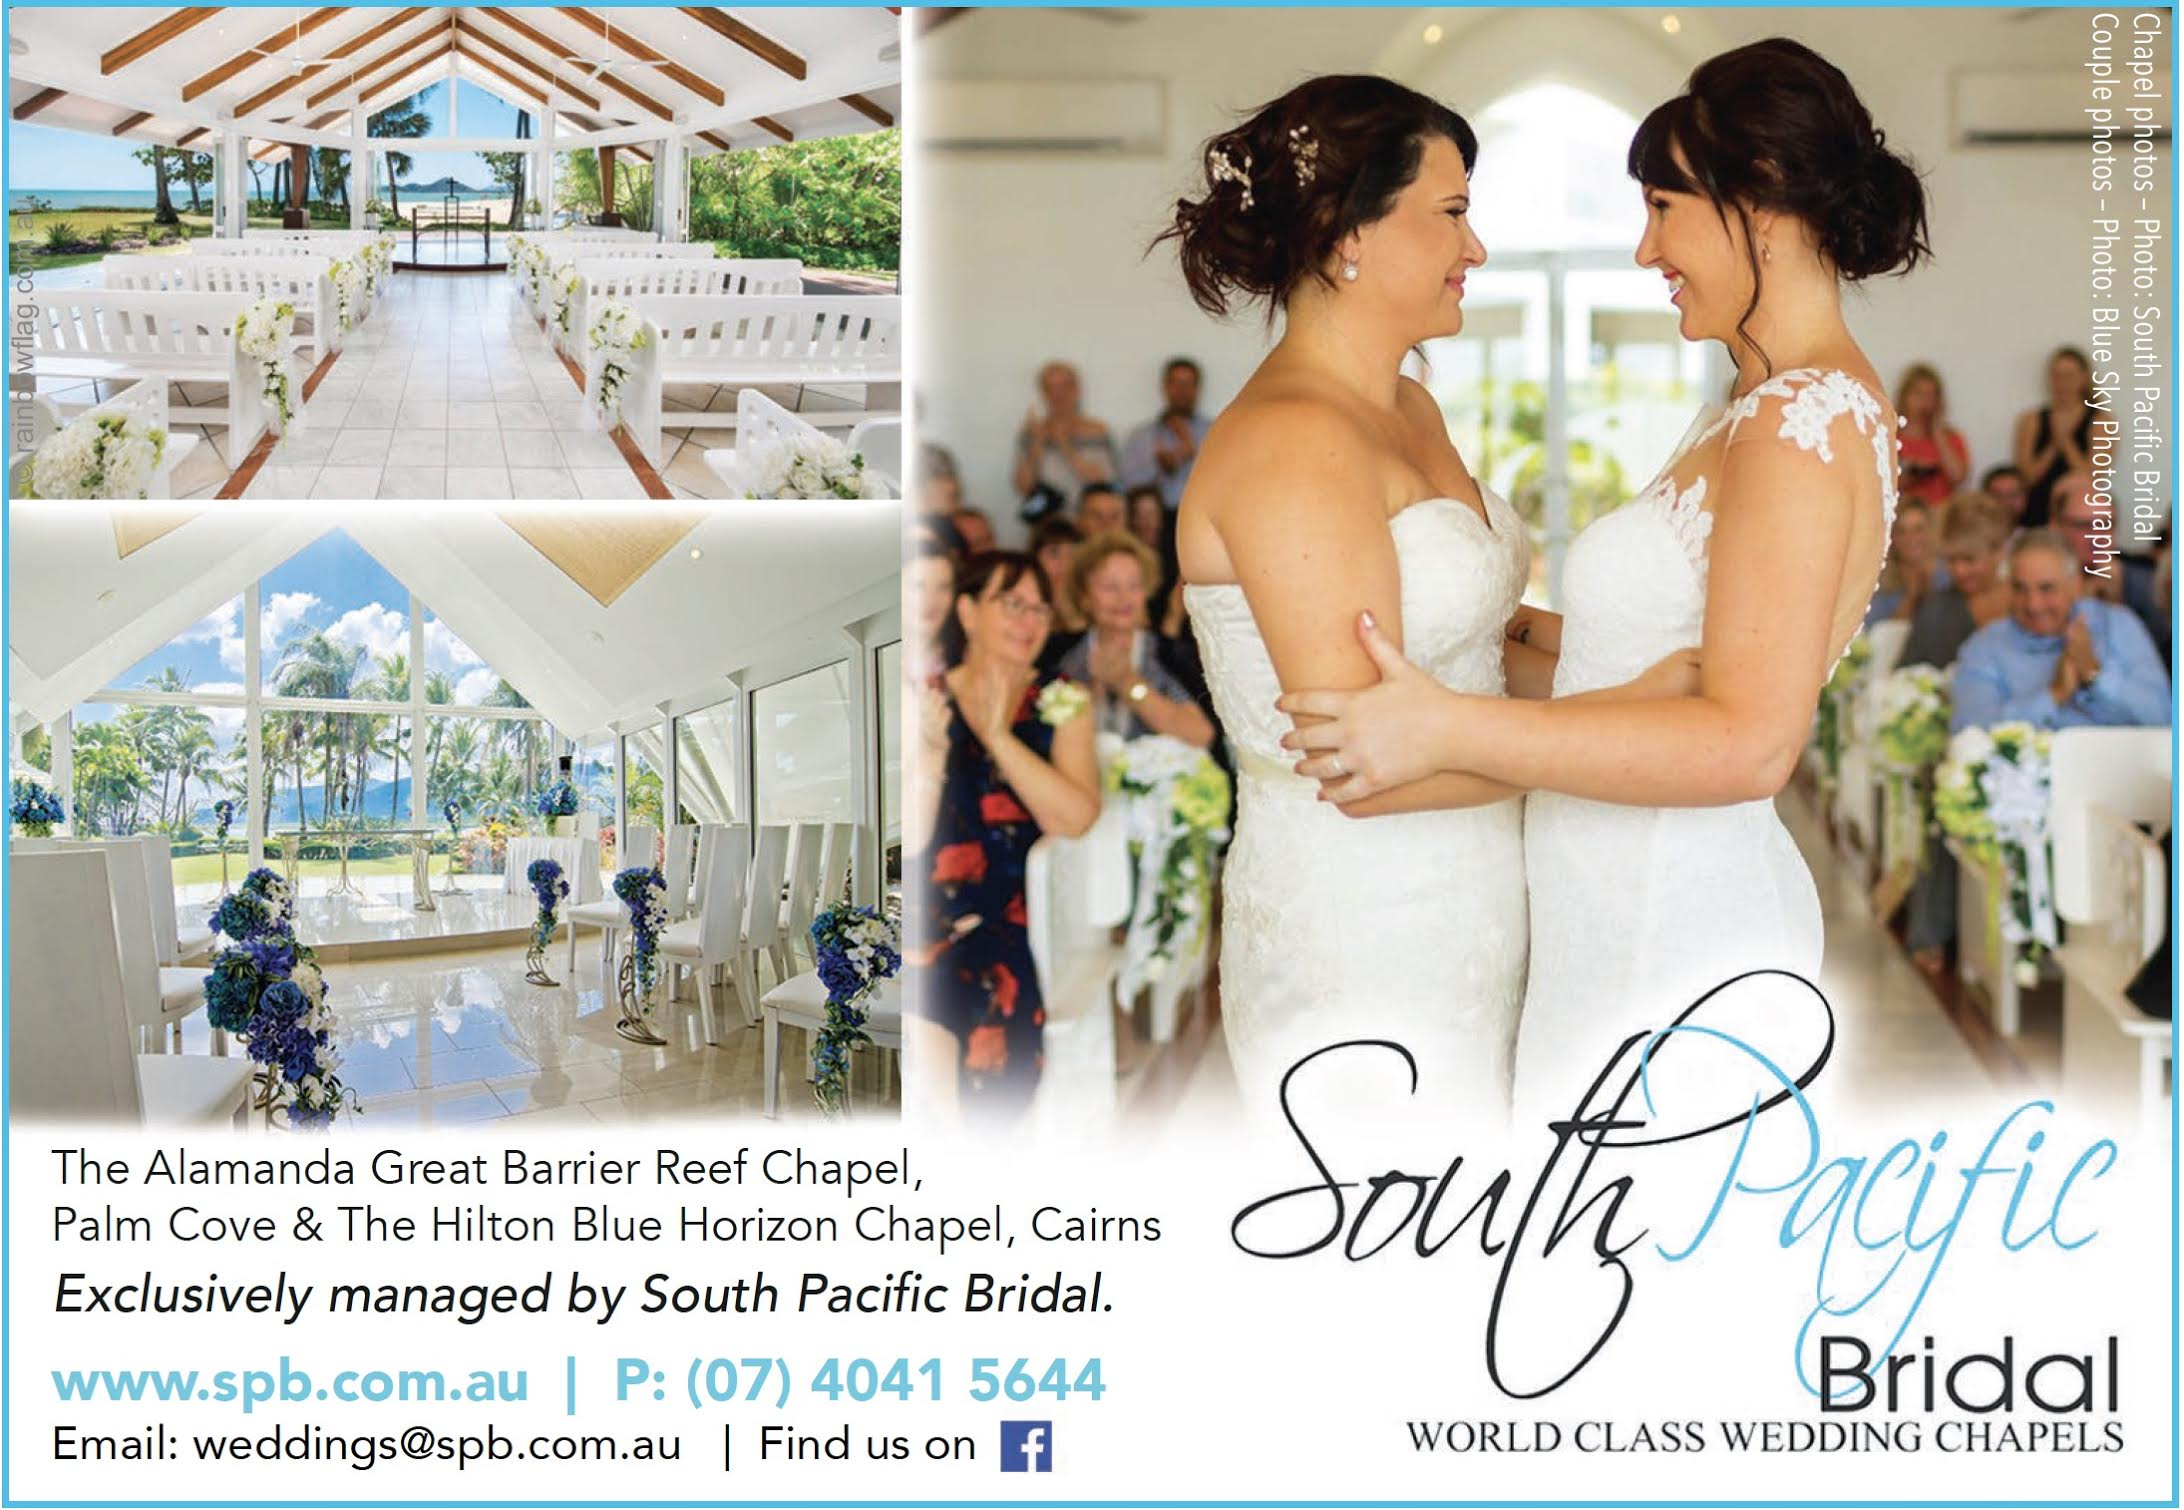 South Pacific Bridal